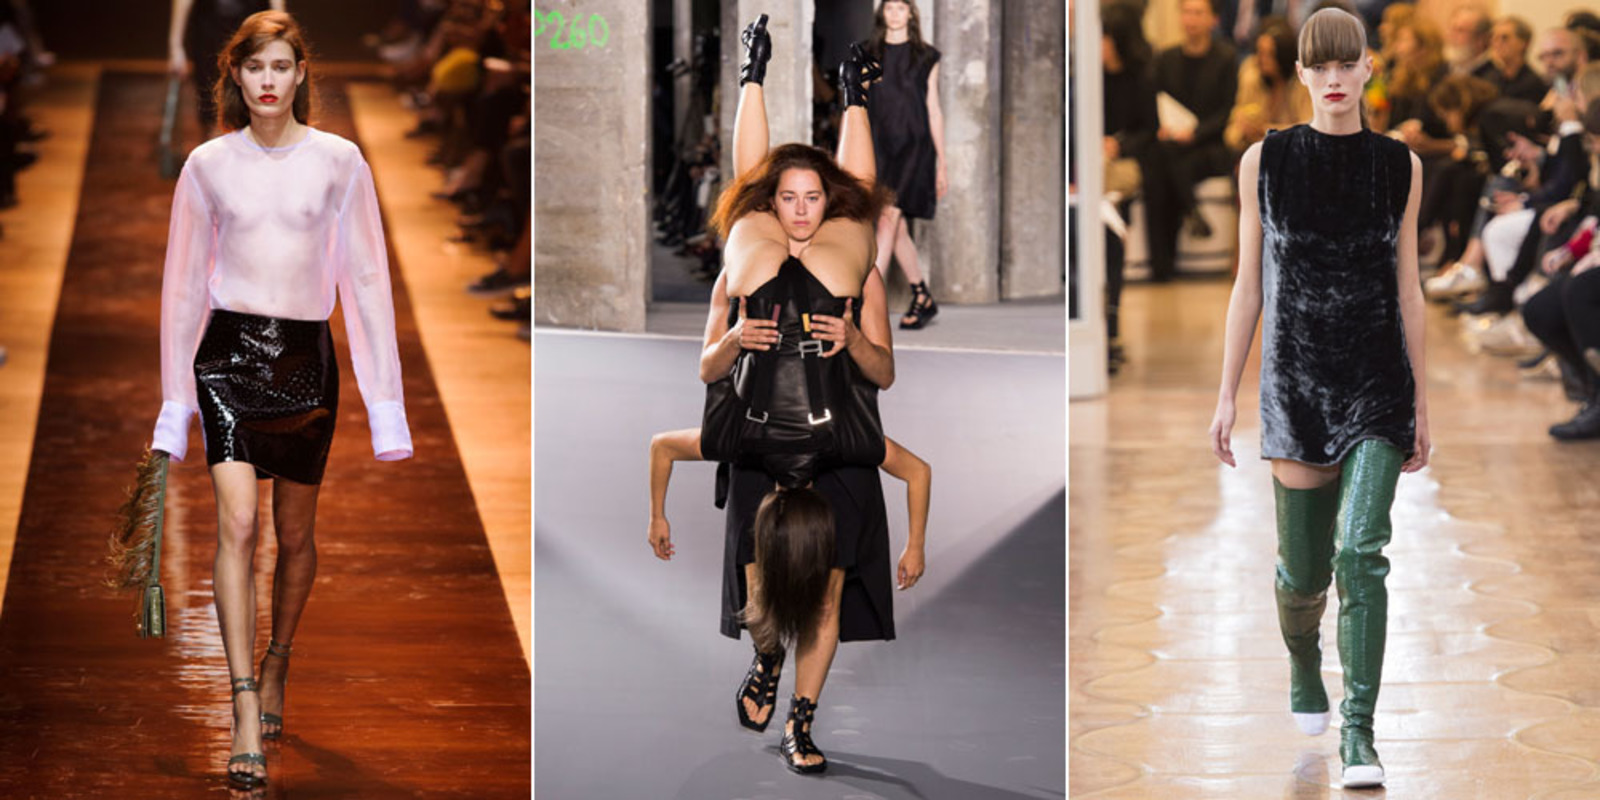 Parijs fashion week over middelbare school revivals for When is fashion week over